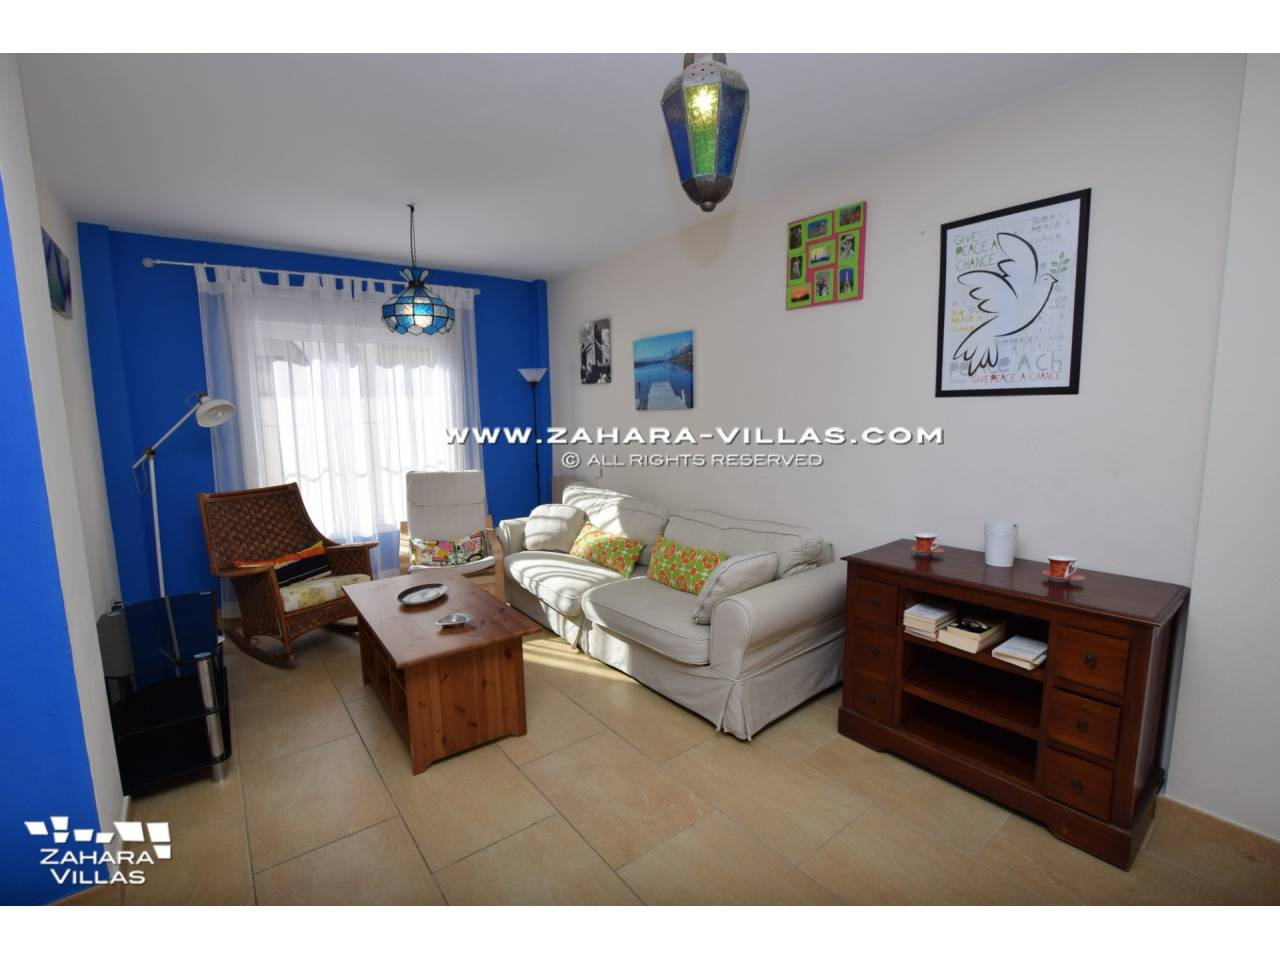 Imagen 5 de Semi-detached house for sale en Zahara de los Atunes